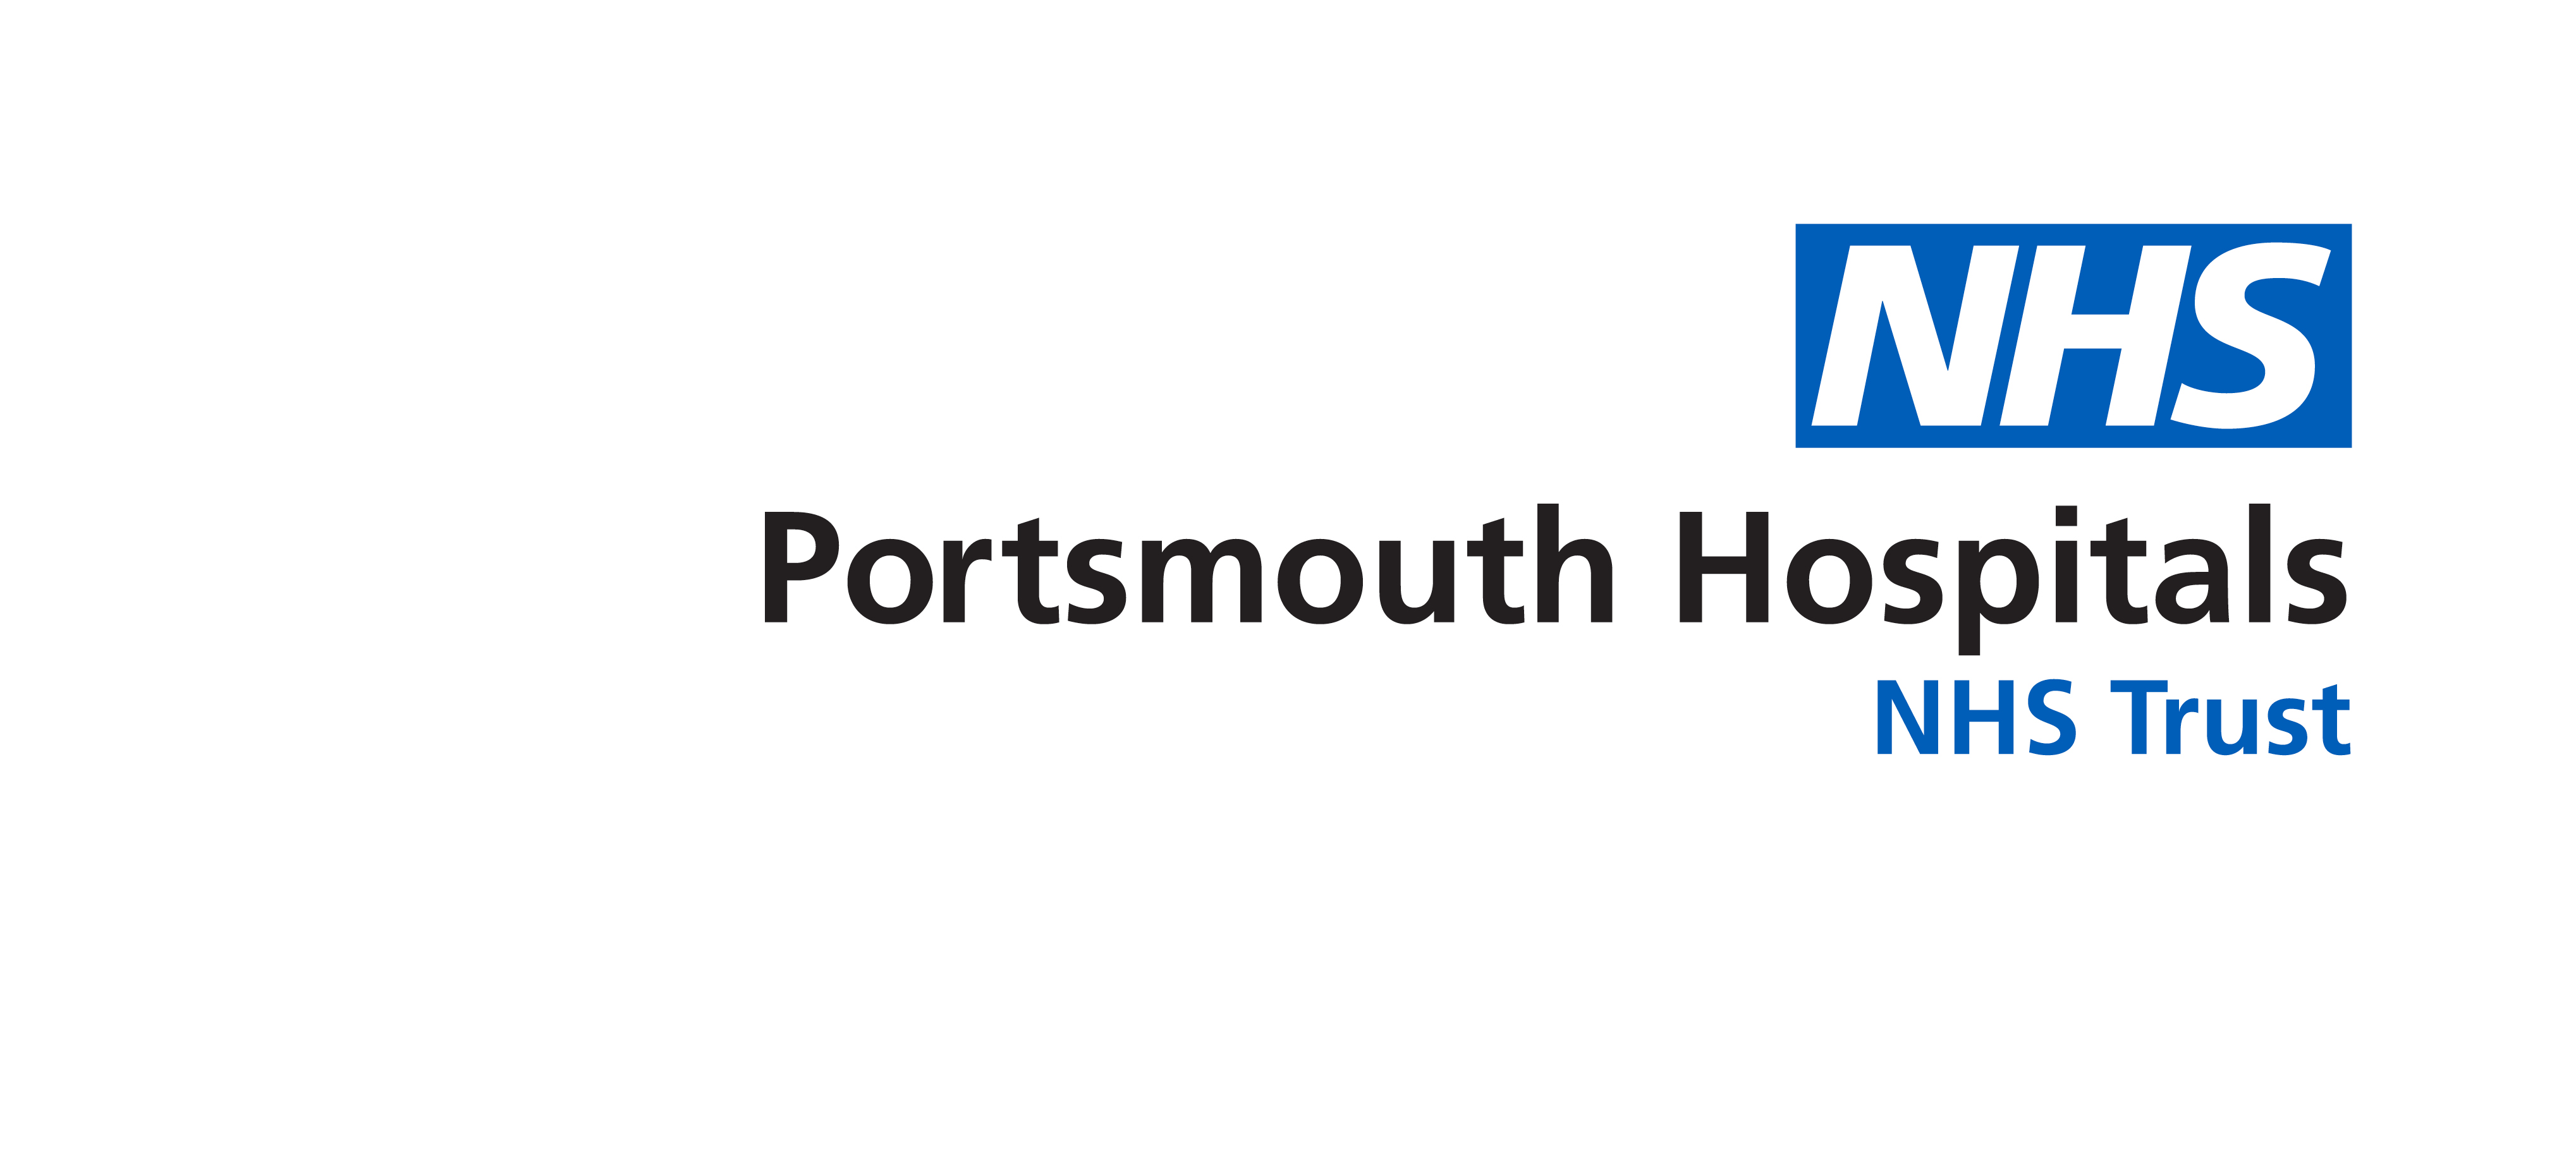 NHS staff in Portsmouth to benefit from more flexible working and early pay as part of ground-breaking new technology trial